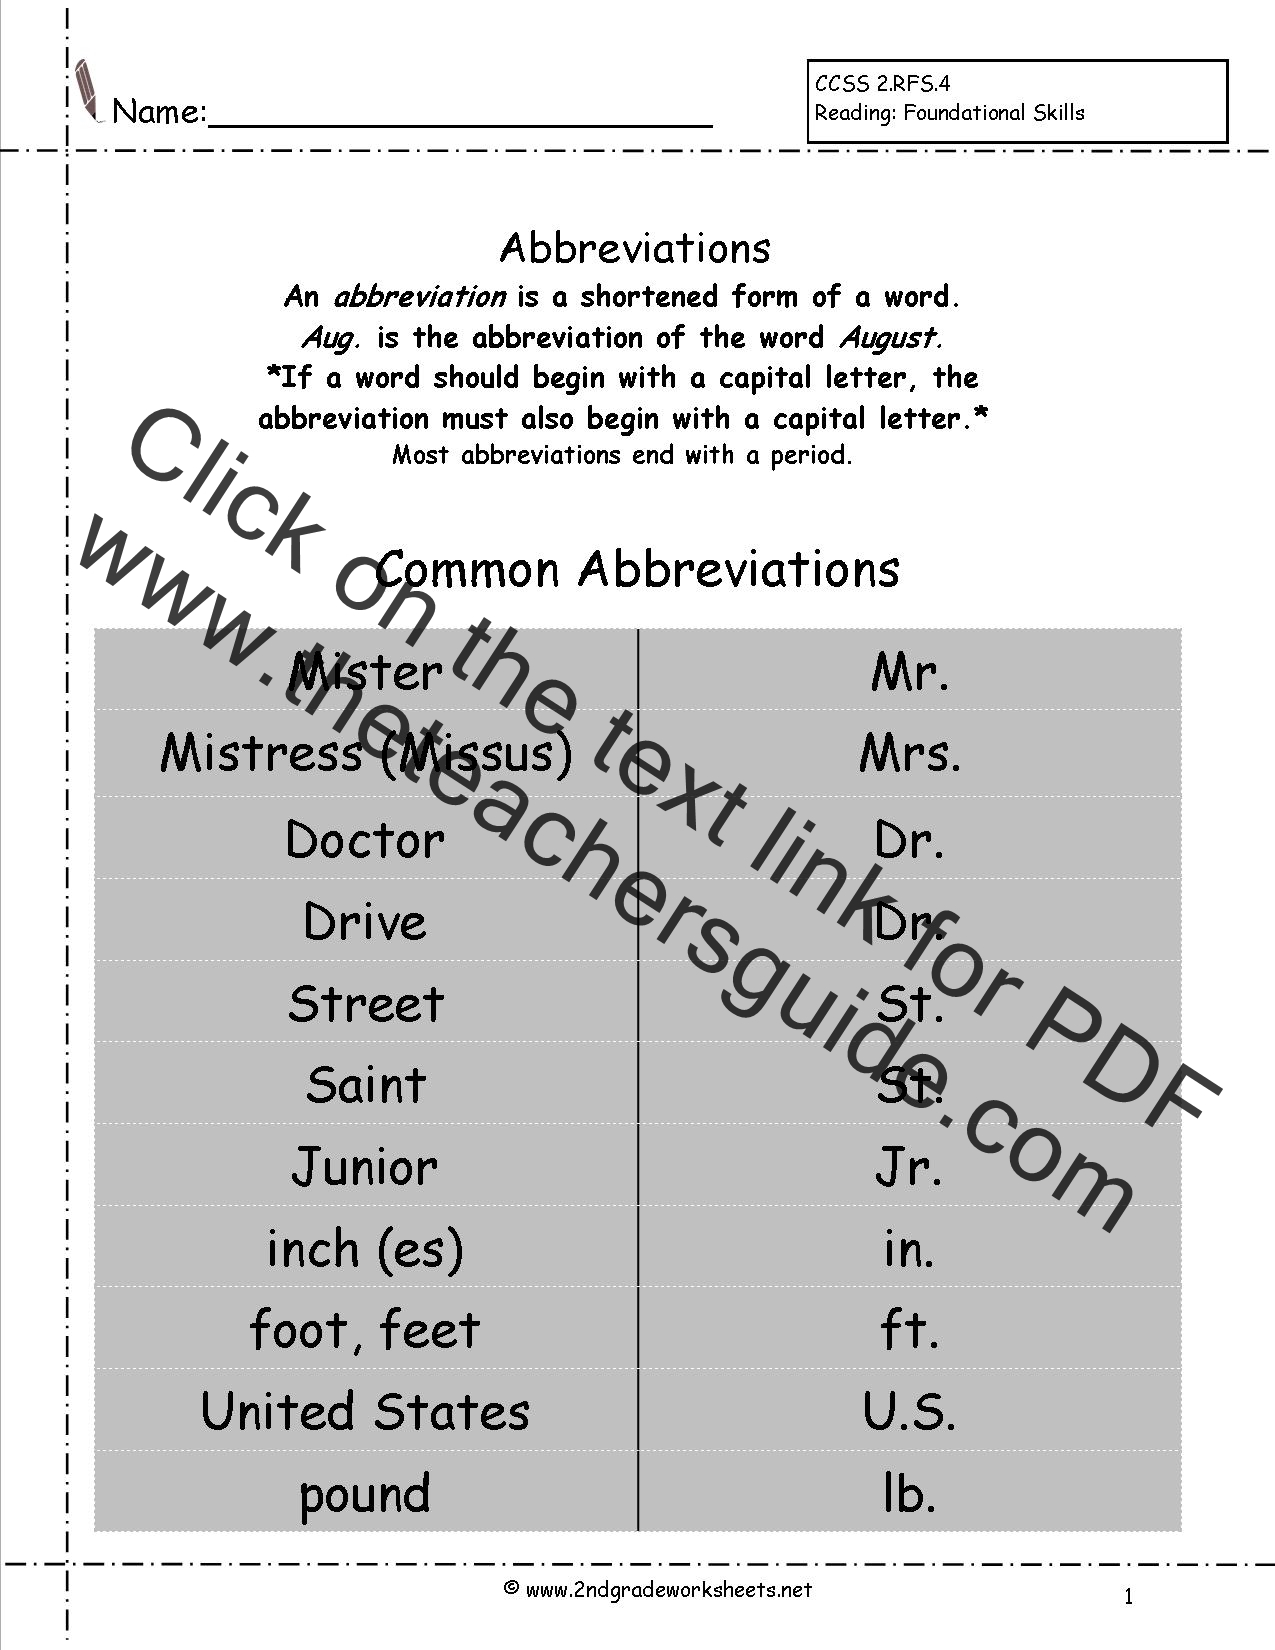 Worksheets Abbreviation Worksheets free abbreviation worksheets and printouts abbreviations worksheet